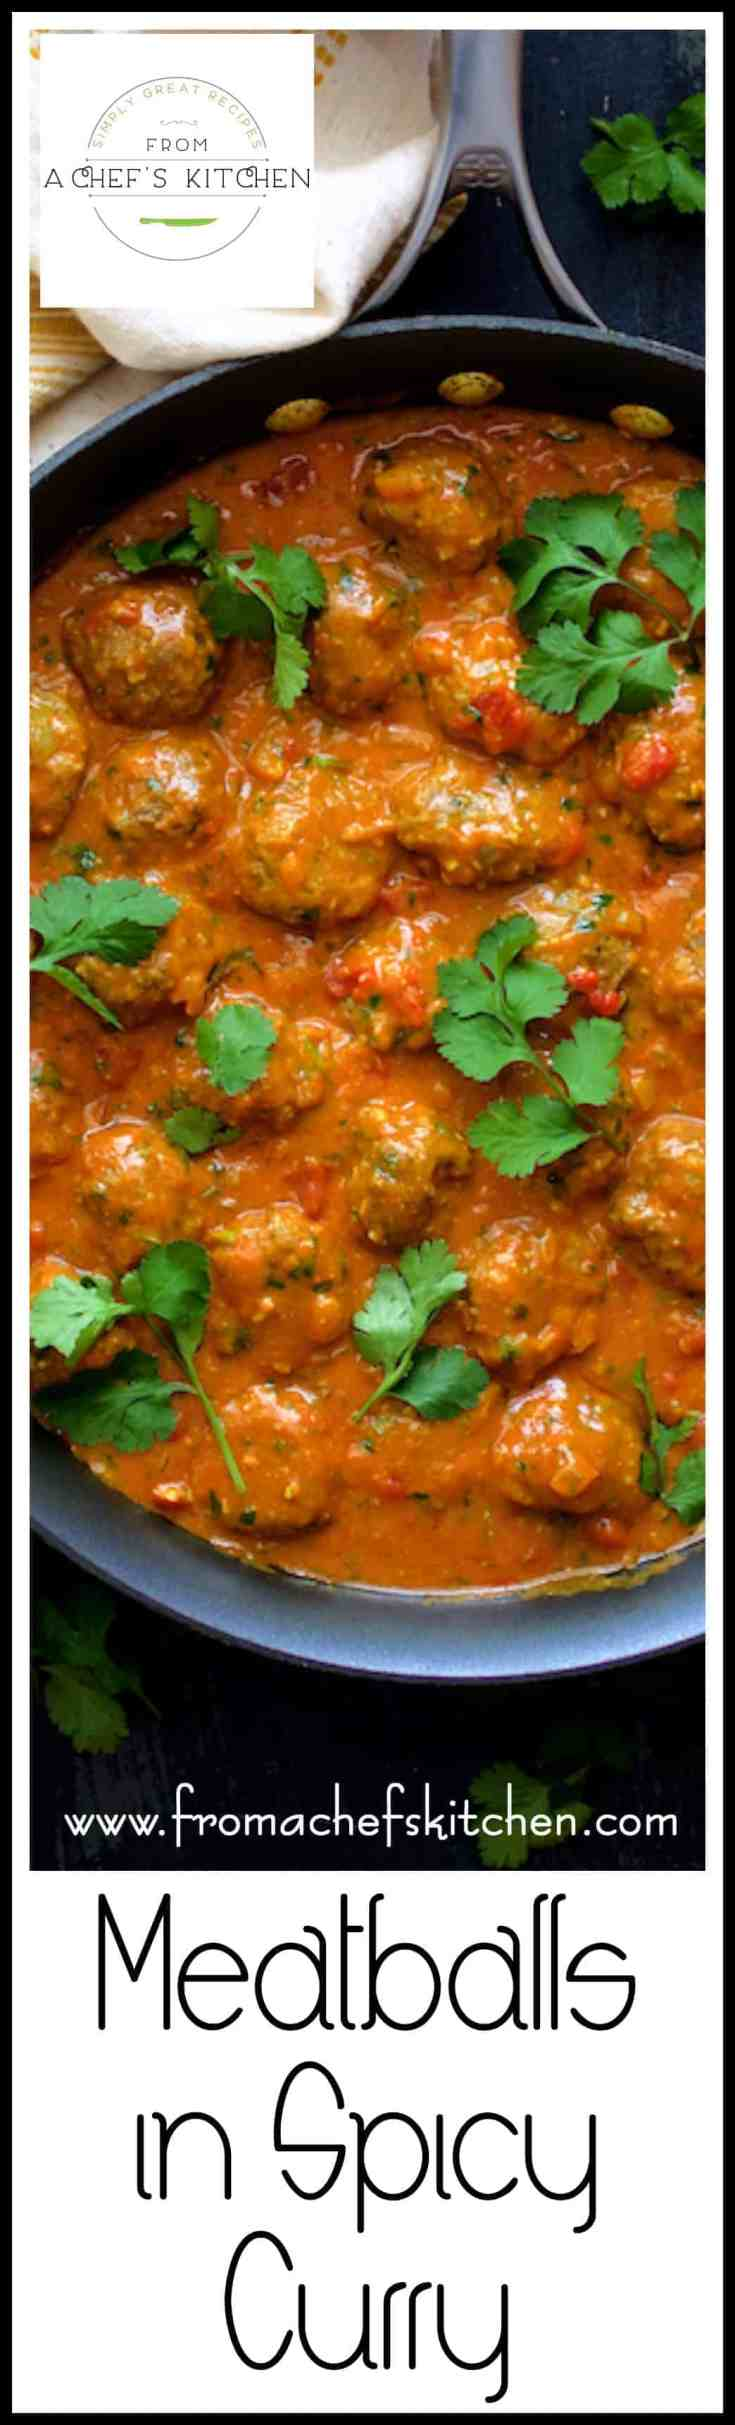 Meatballs in Spicy Curry rock with flavor and can be made with any protein!  Try beef, lamb, chicken or turkey meatballs smothered in this amazing spicy Indian-inspired sauce!  #meatballs #curry #Indian #Indianfood #spicyfood